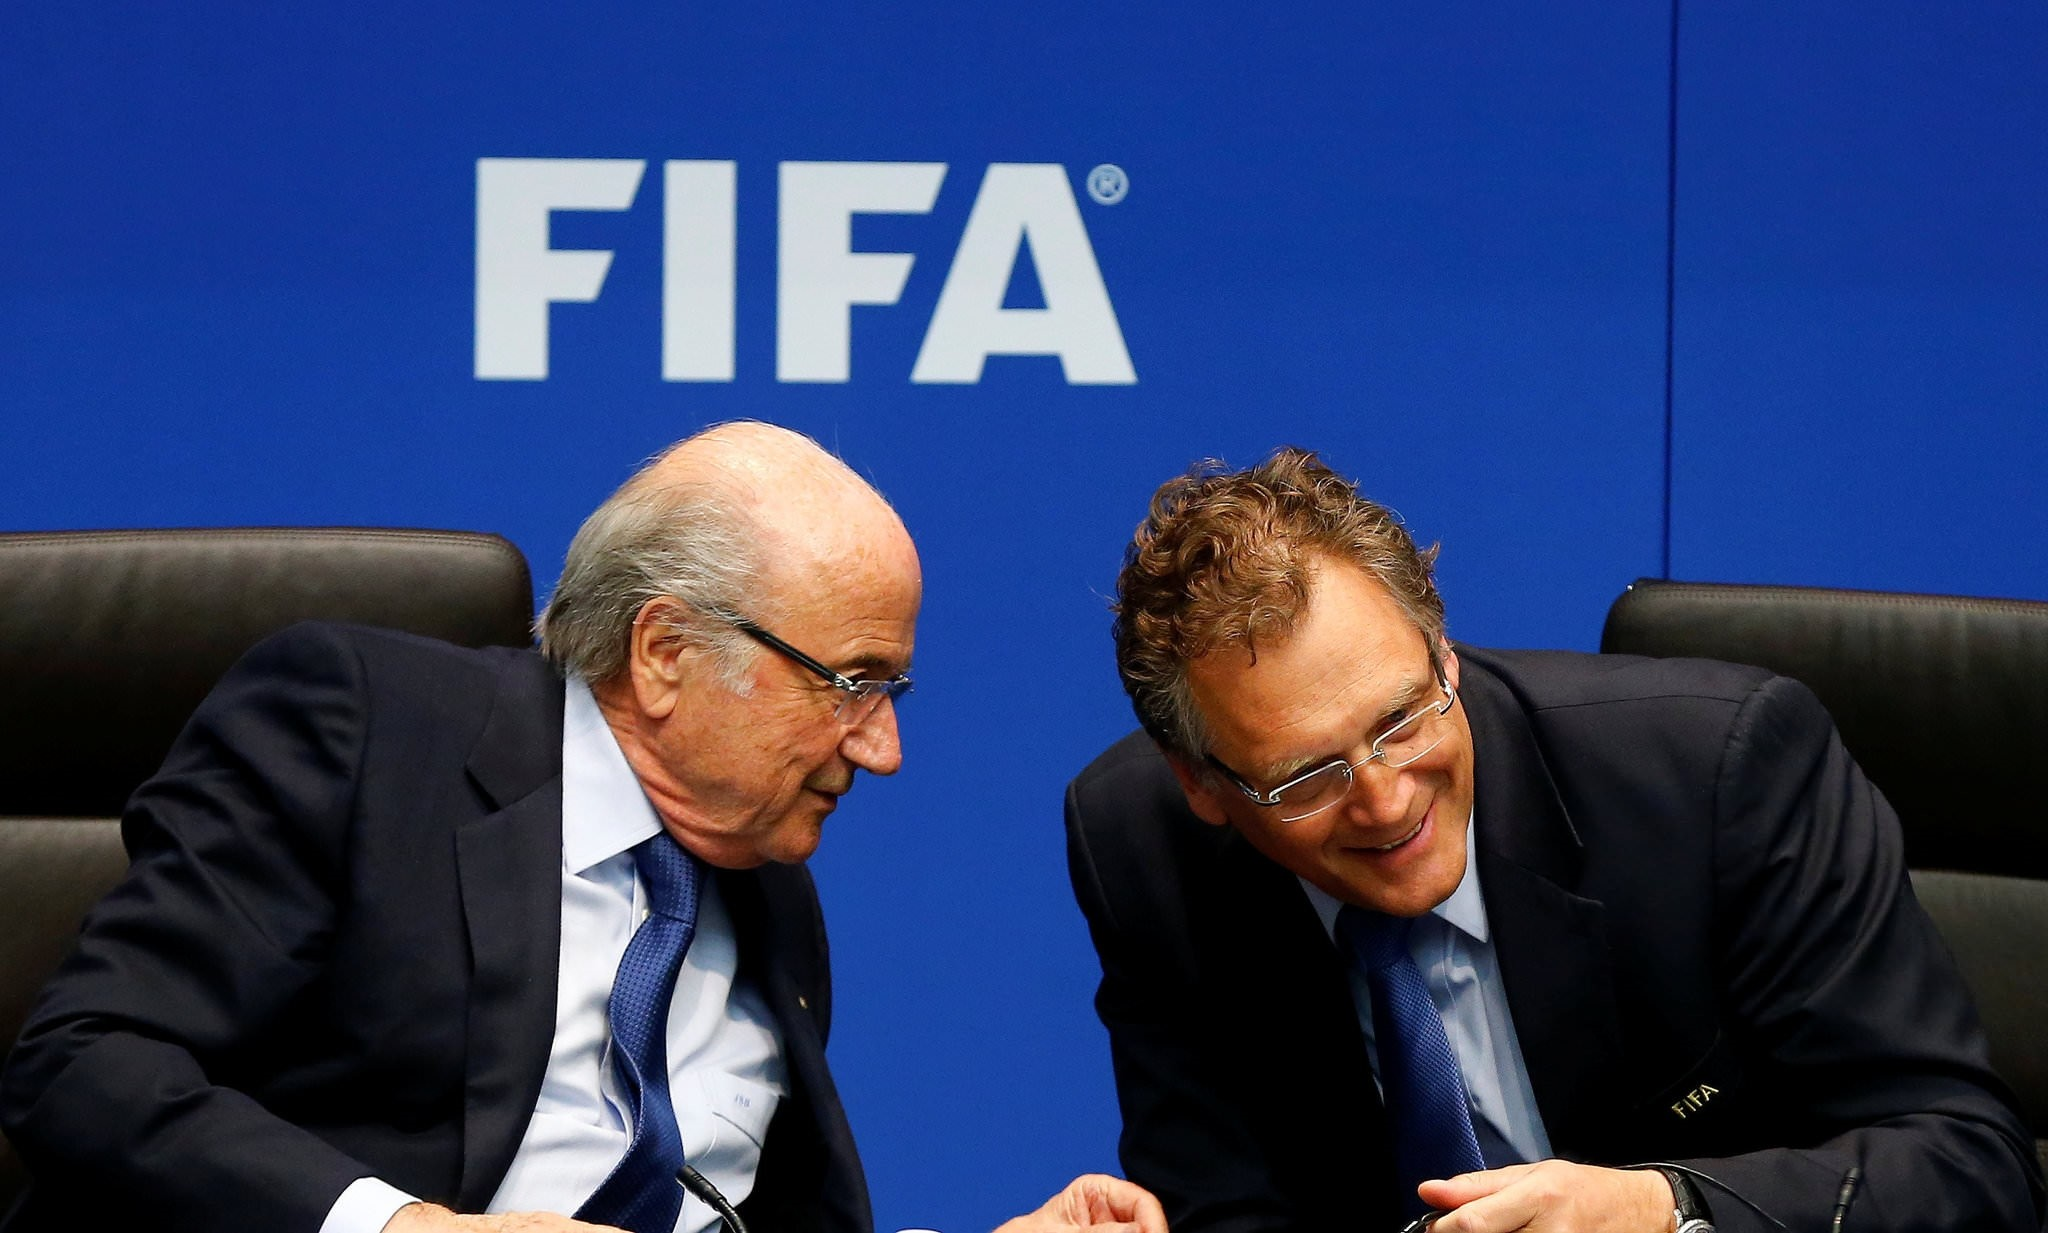 FIFA President Sepp Blatter (L) talks to FIFA Secretary General Jerome Valcke during a news conference after a meeting of the FIFA executive committee in Zurich March 21, 2014. (REUTERS Photo)